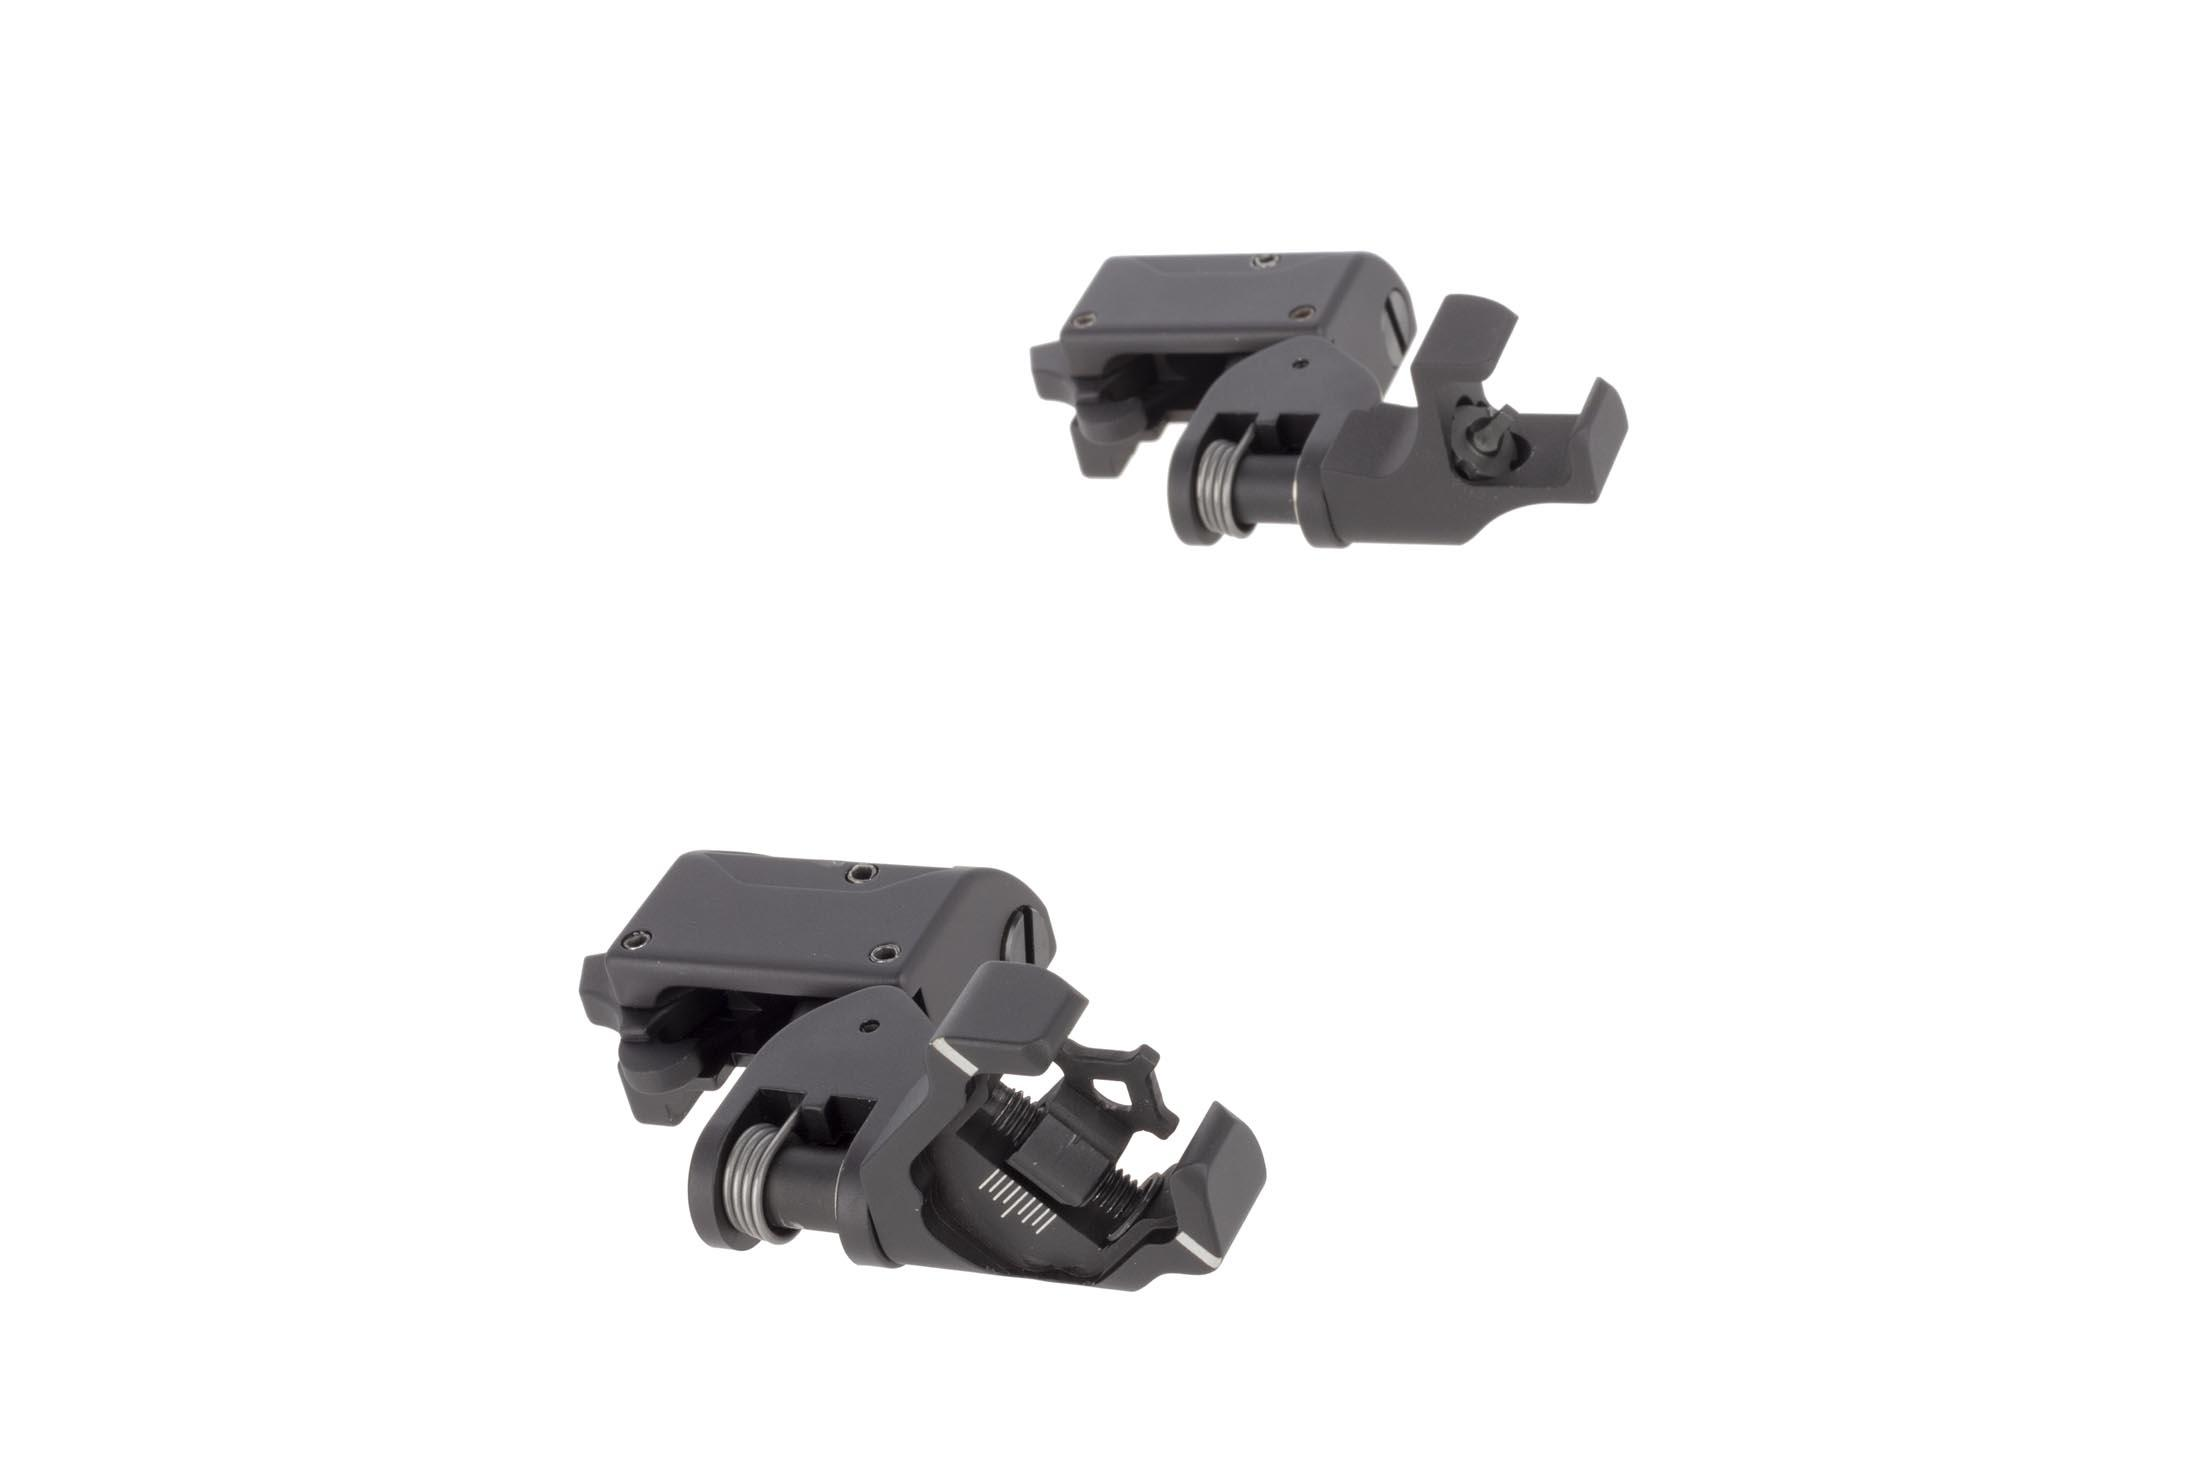 Diamondhead 45-degree offset sights allow for instant transitions from magnified optics to close quarters engagement